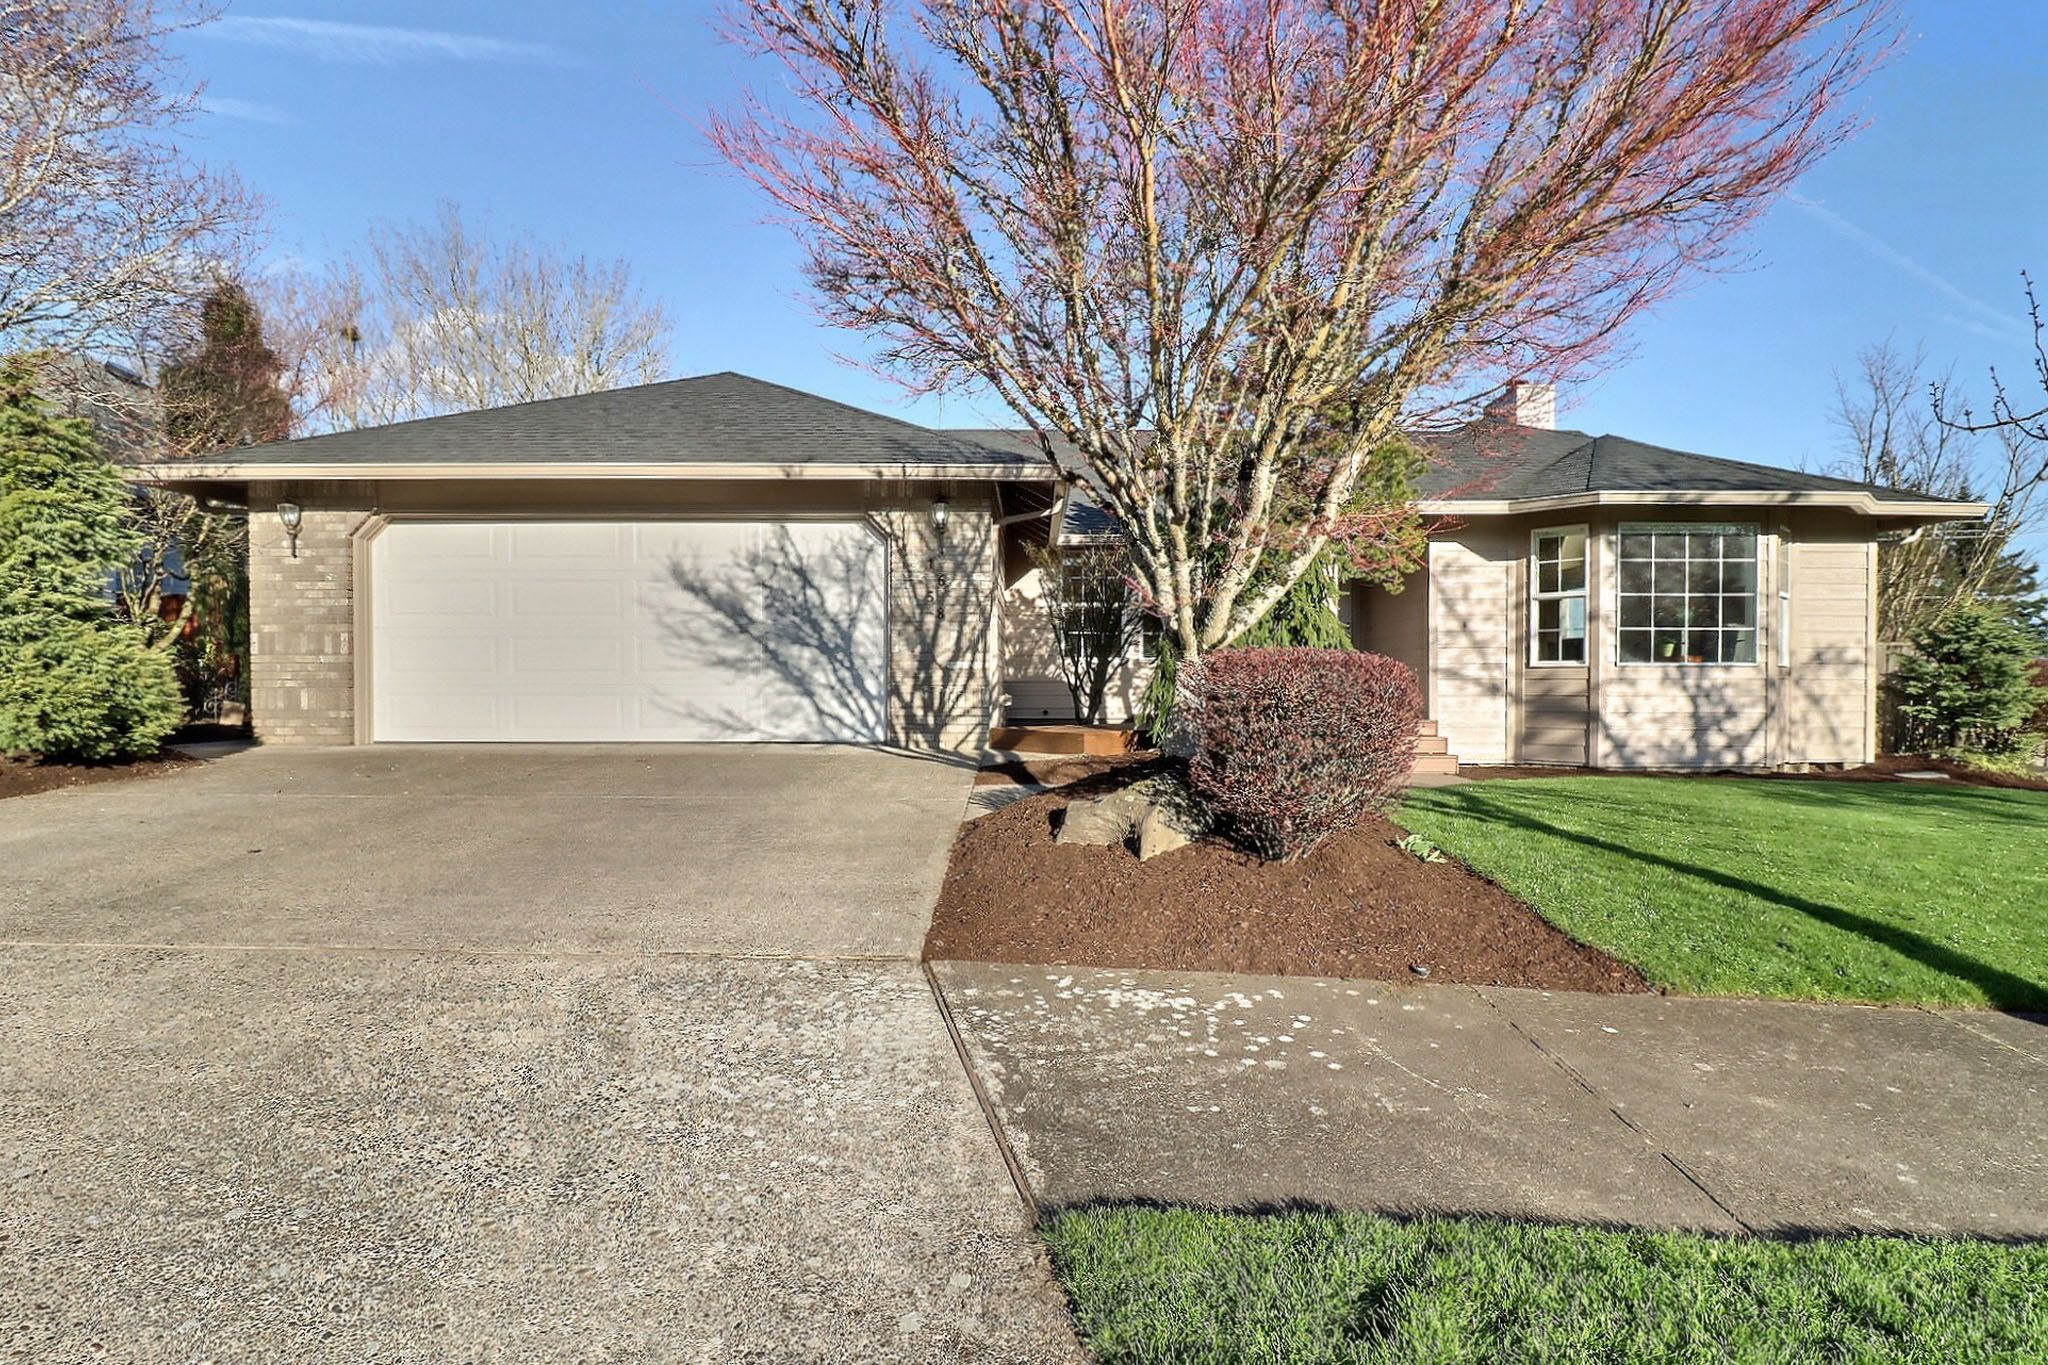 1658 Sw Spence Ave Lovely Ranch Home W Great Views Enter To New Hardwood Flooring 2015 Skylight In Entry Bay Window In 2020 Side Deck Arched Windows Bay Window